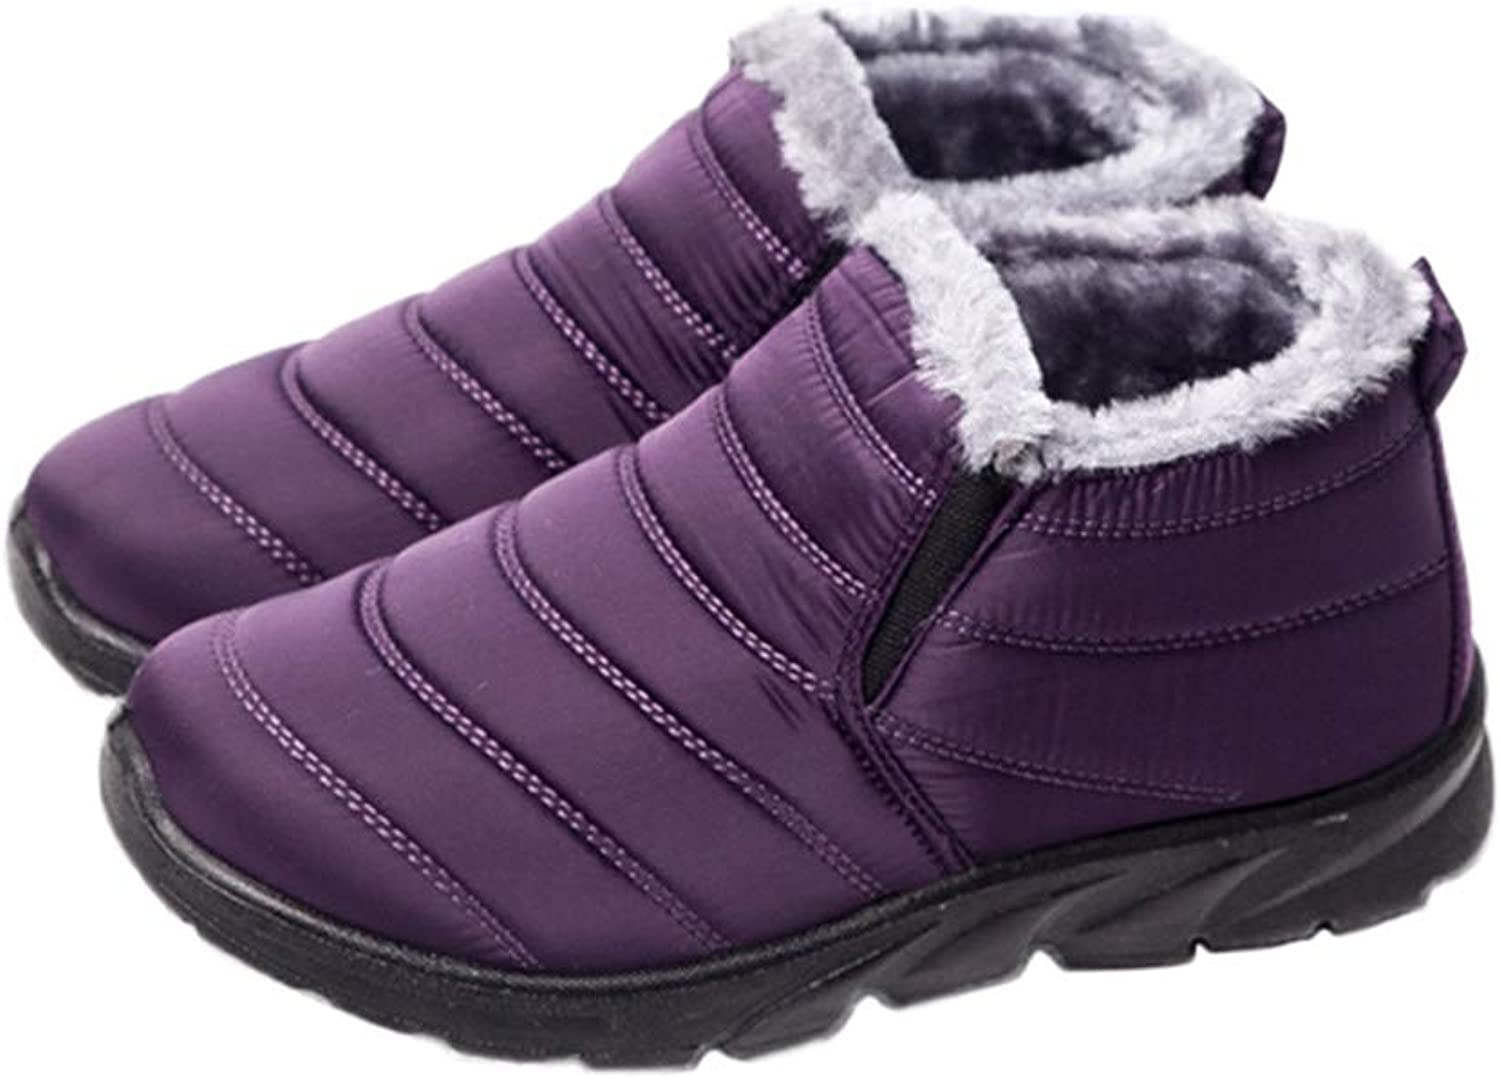 T-JULY Thickening Cashmere Snow Boots Women Keep Warm Plush Cotton Waterproof Autumn Winter Flat Slip-On shoes